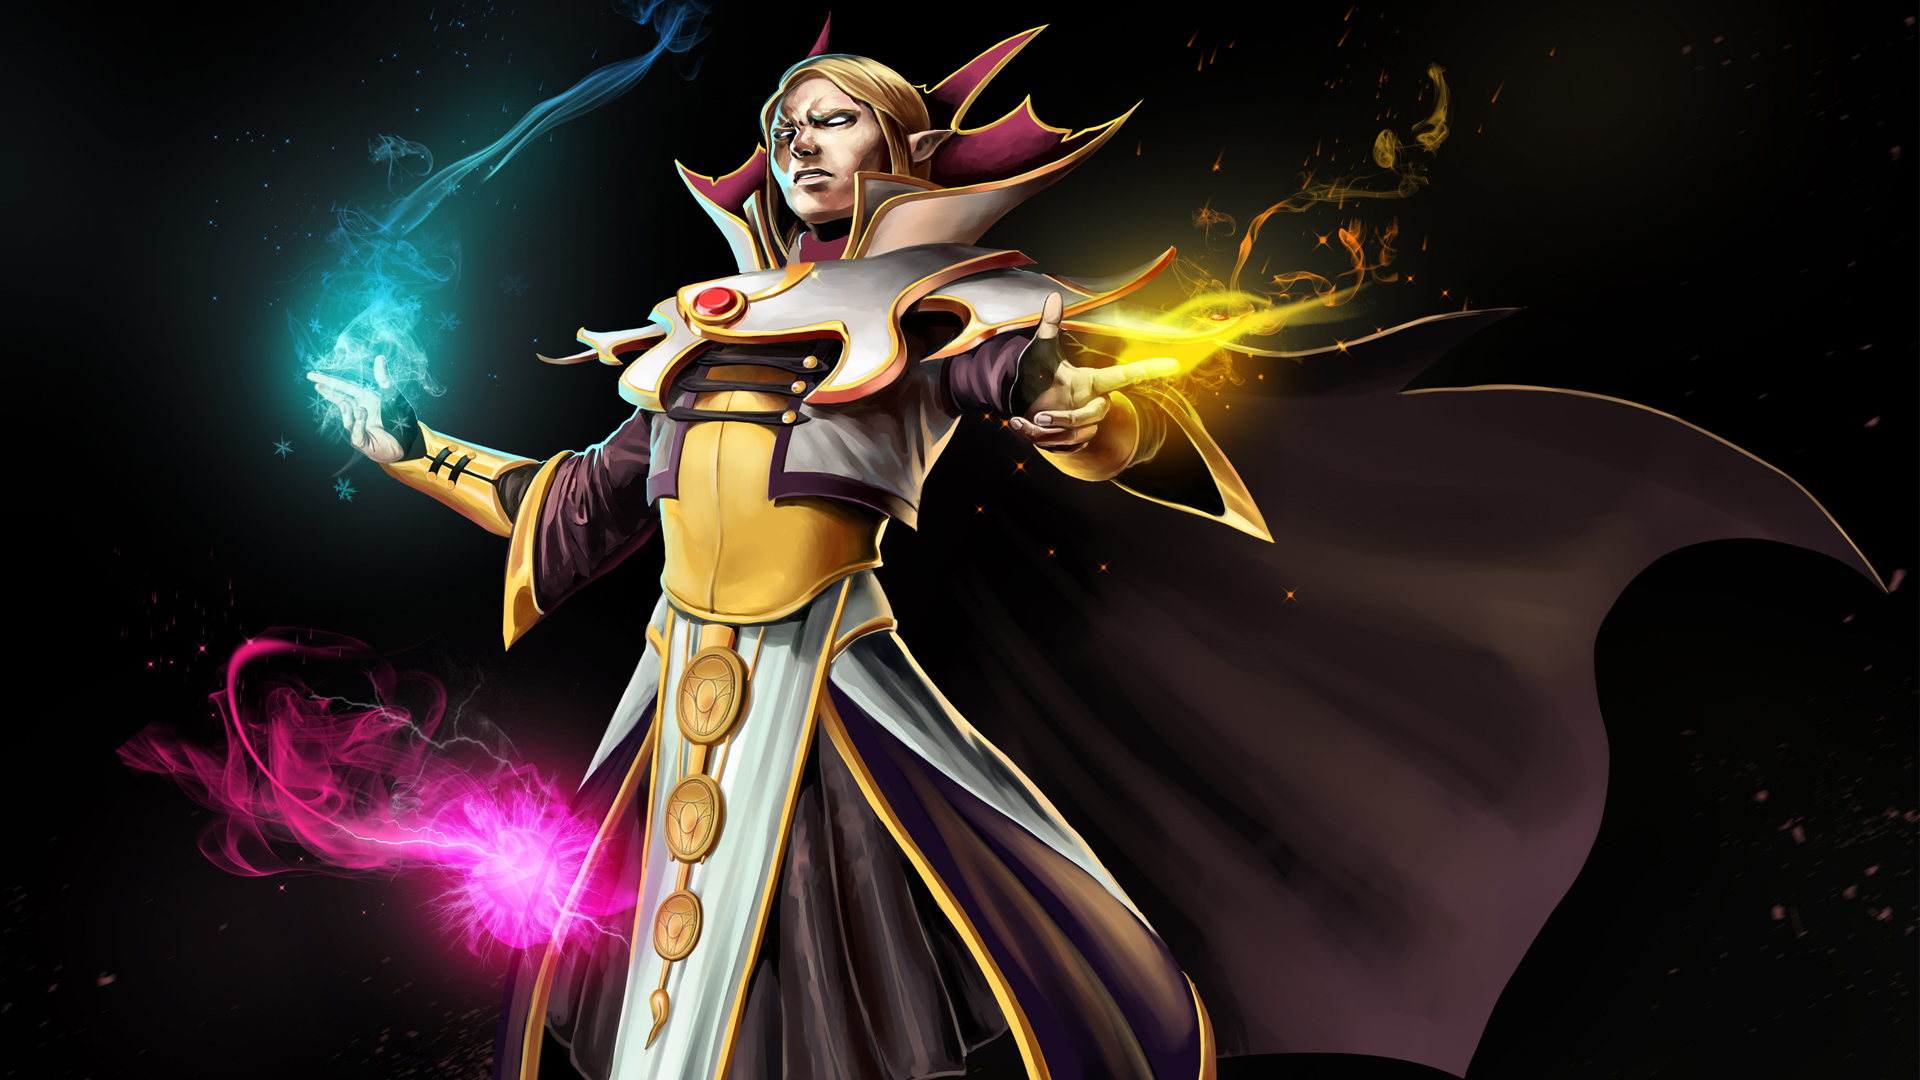 invoker dota 2 game hd wallpaper image picture photo defense of 1920x1080